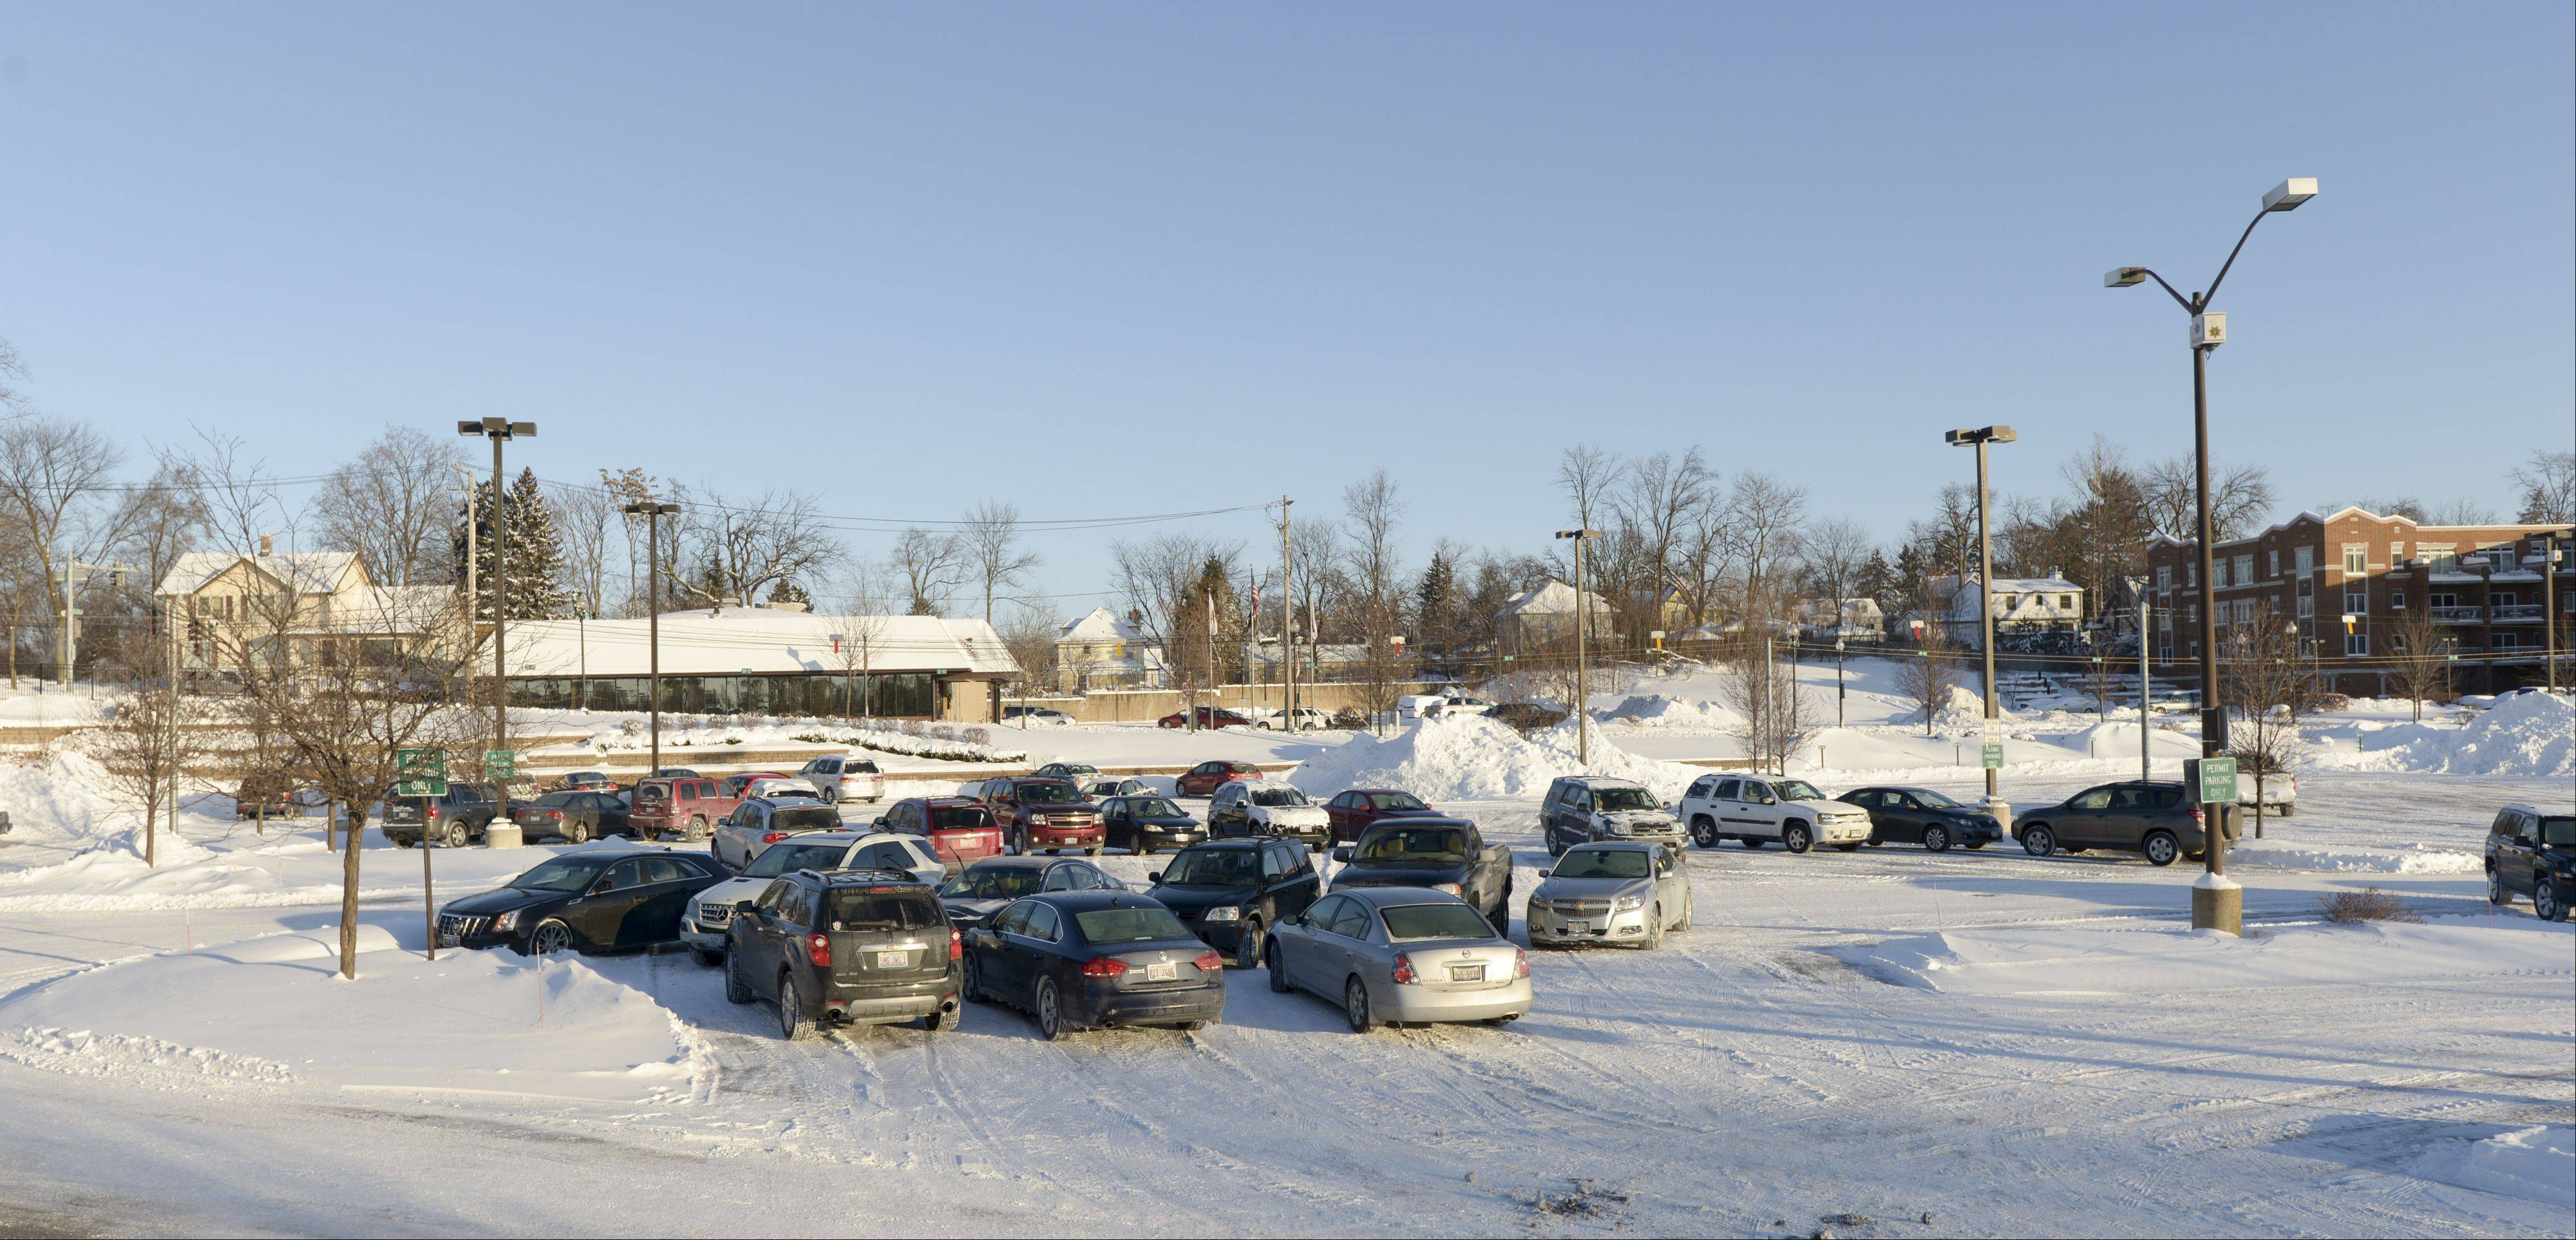 West Chicago train station parking lot is not even close to being full as normal as many commuters stay home from work due to the record breaking extreme cold weather that has hit Chicago suburbs.